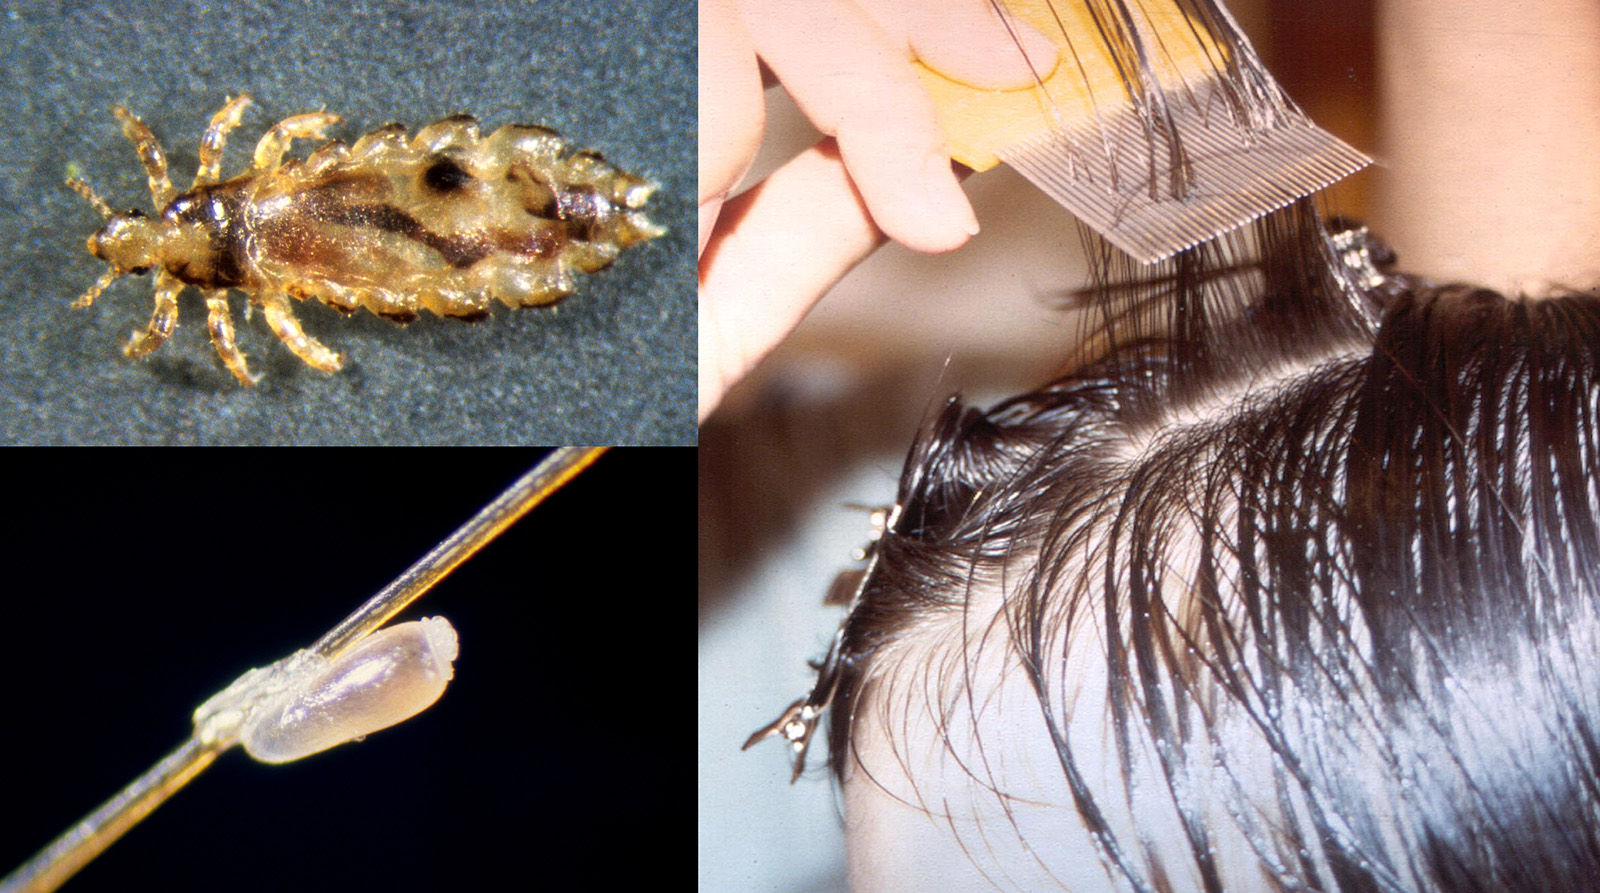 (L-R) Adult louse (highly magnified); Nit (egg) on a strand of hair (highly magnified); Use a nit comb on wet hair. Photos by UNL Entomology and Barb Ogg, Extension Educator, Emeritus